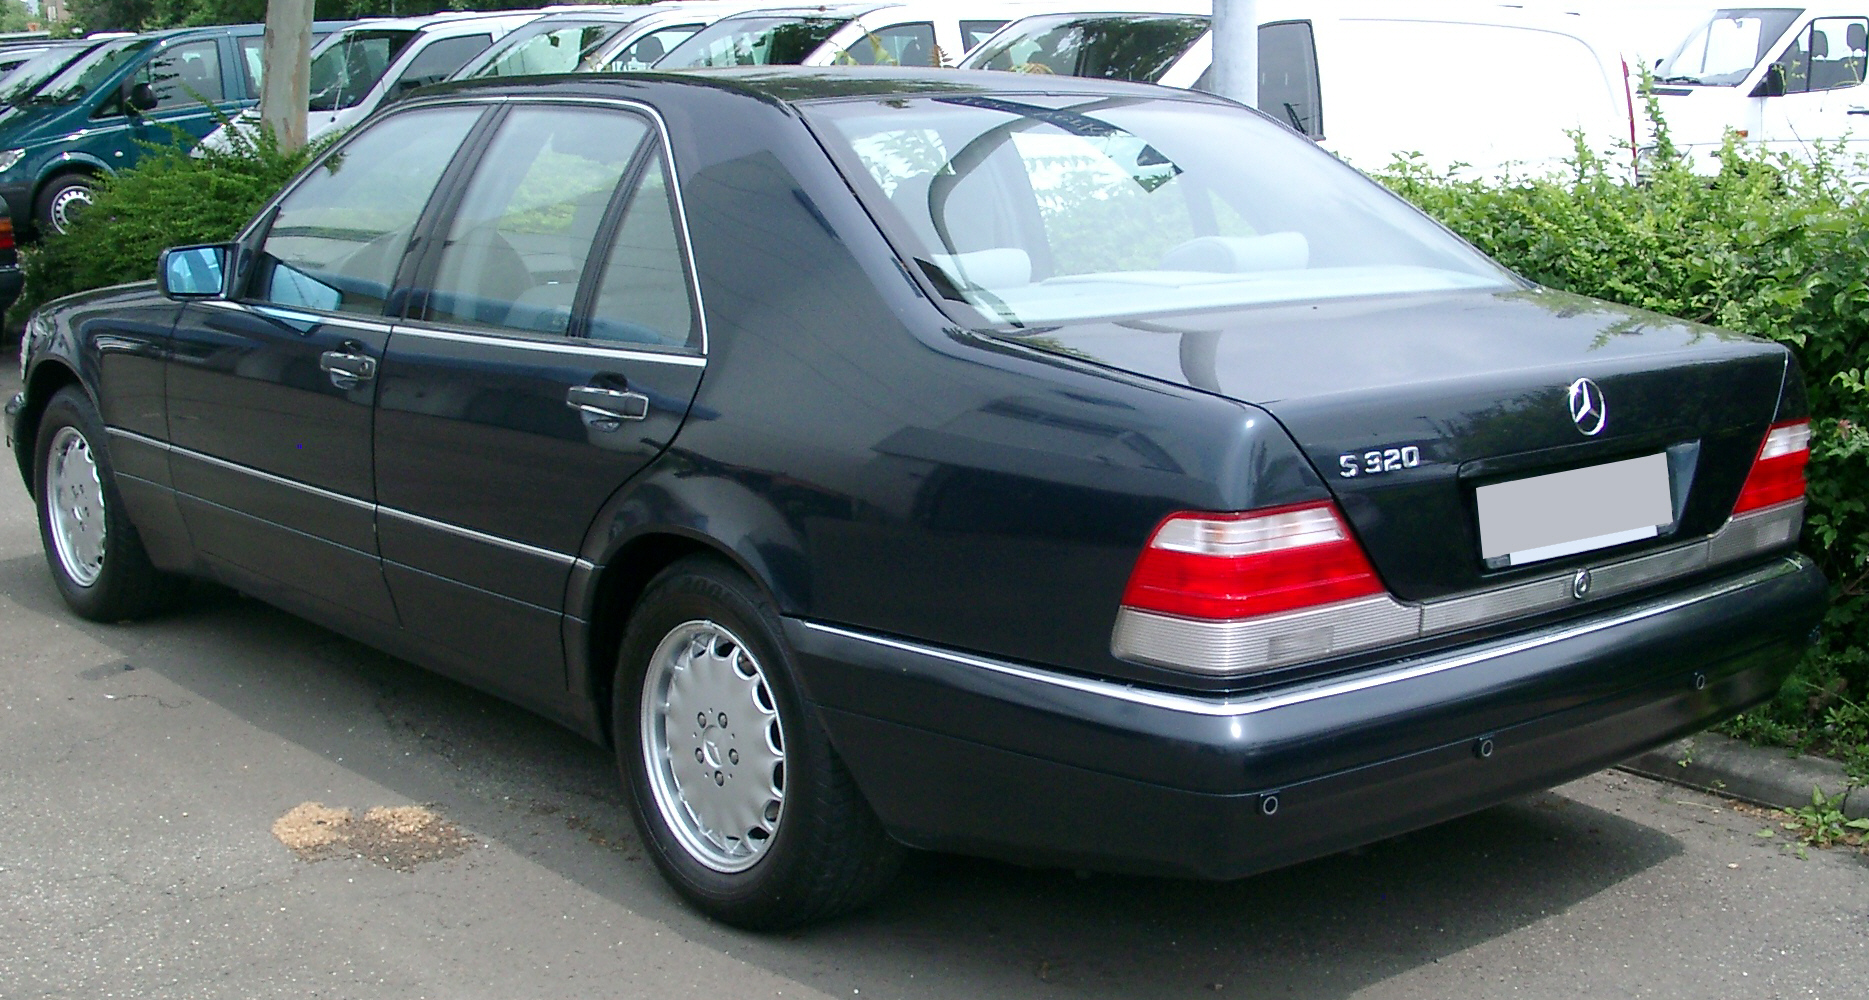 File:Mercedes W140 rear 20070609.jpg